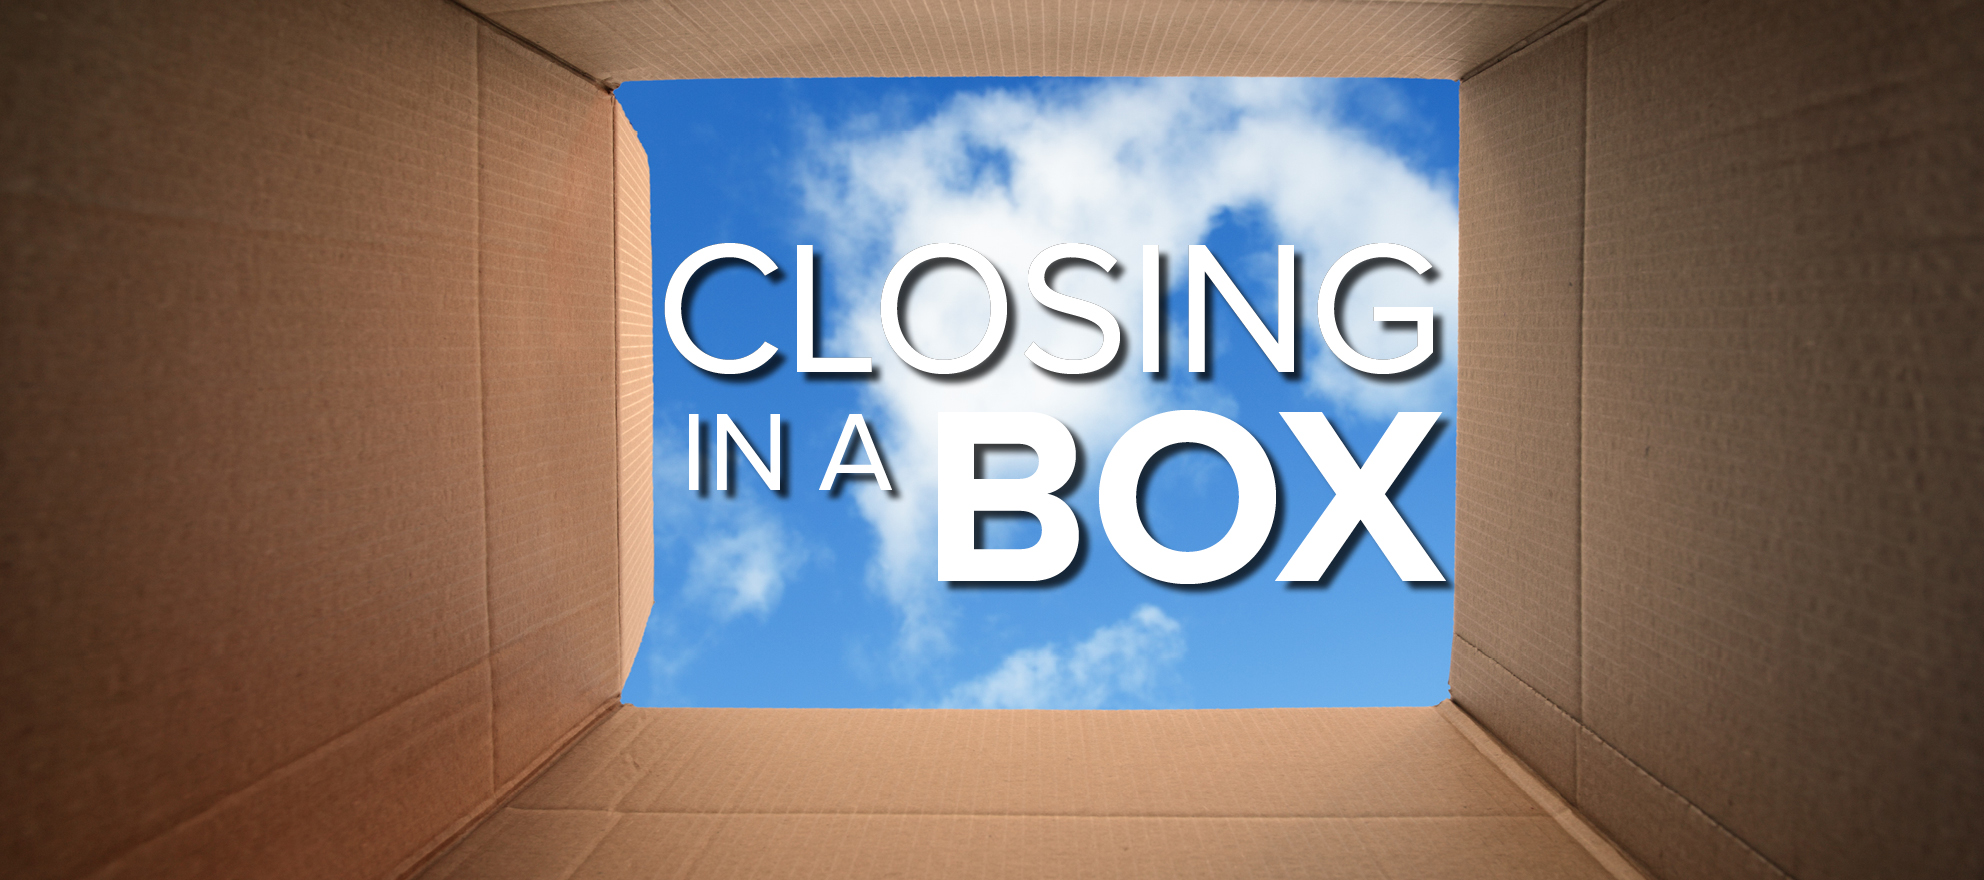 Deliver a 'closing in a box' and win $25K